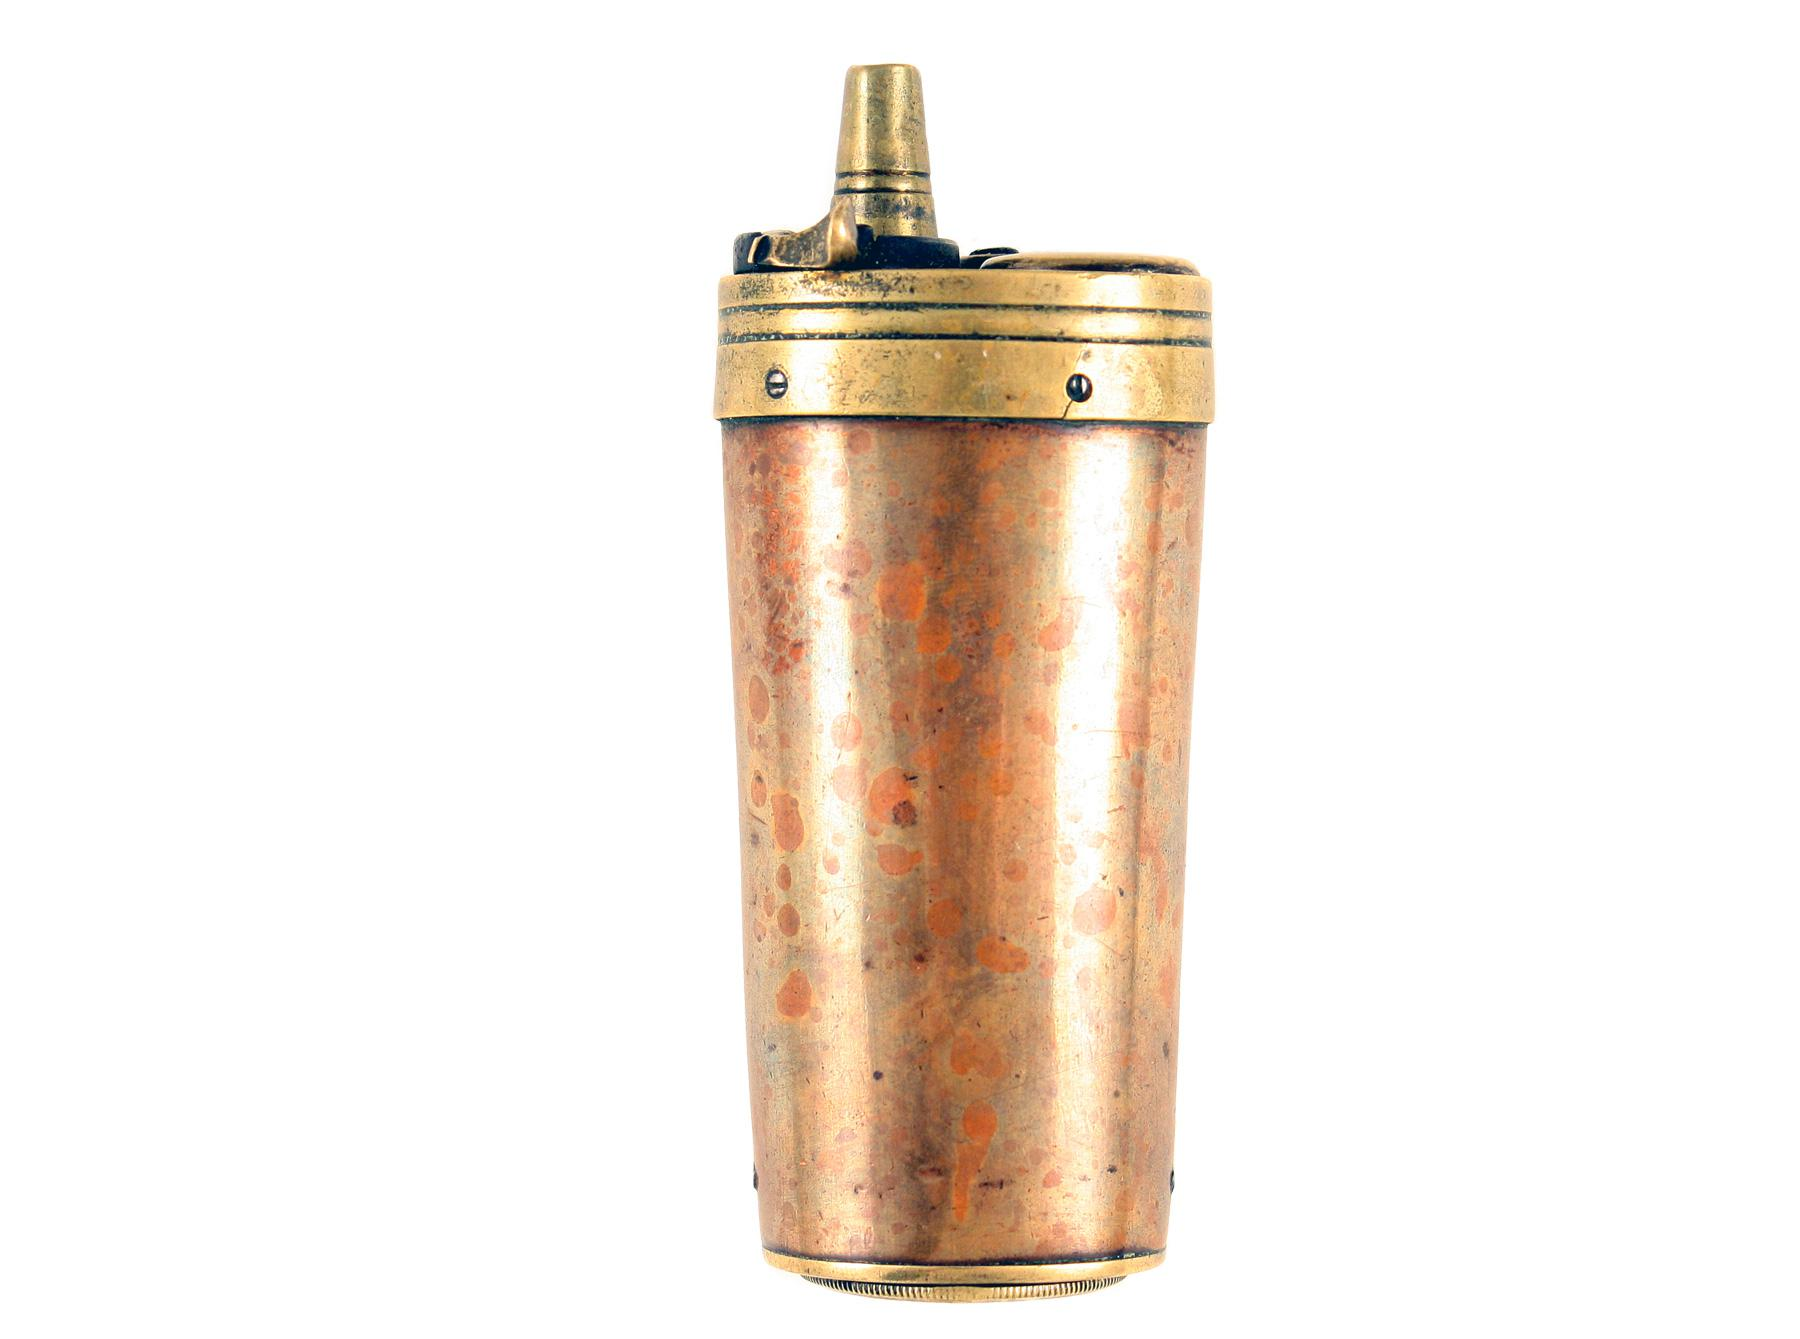 A Three-Way Powder Flask.